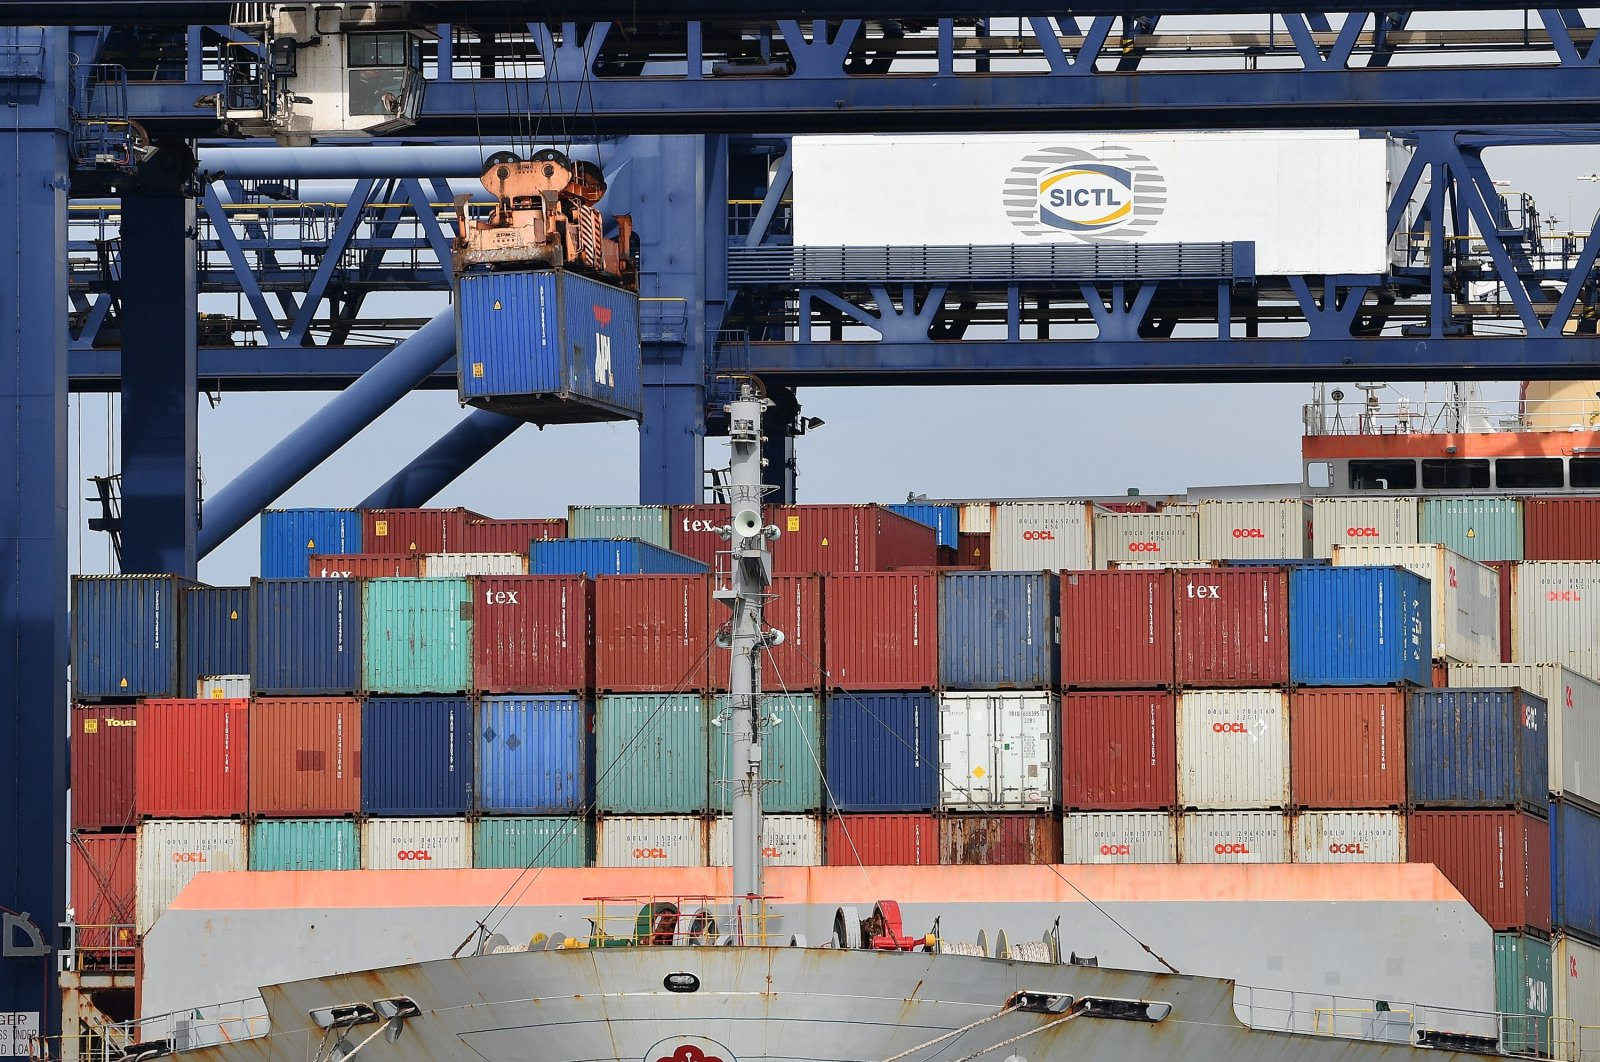 A container ship is loaded at Port Botany in Sydney, Australia, Aug. 4, 2020. (AFP Photo)